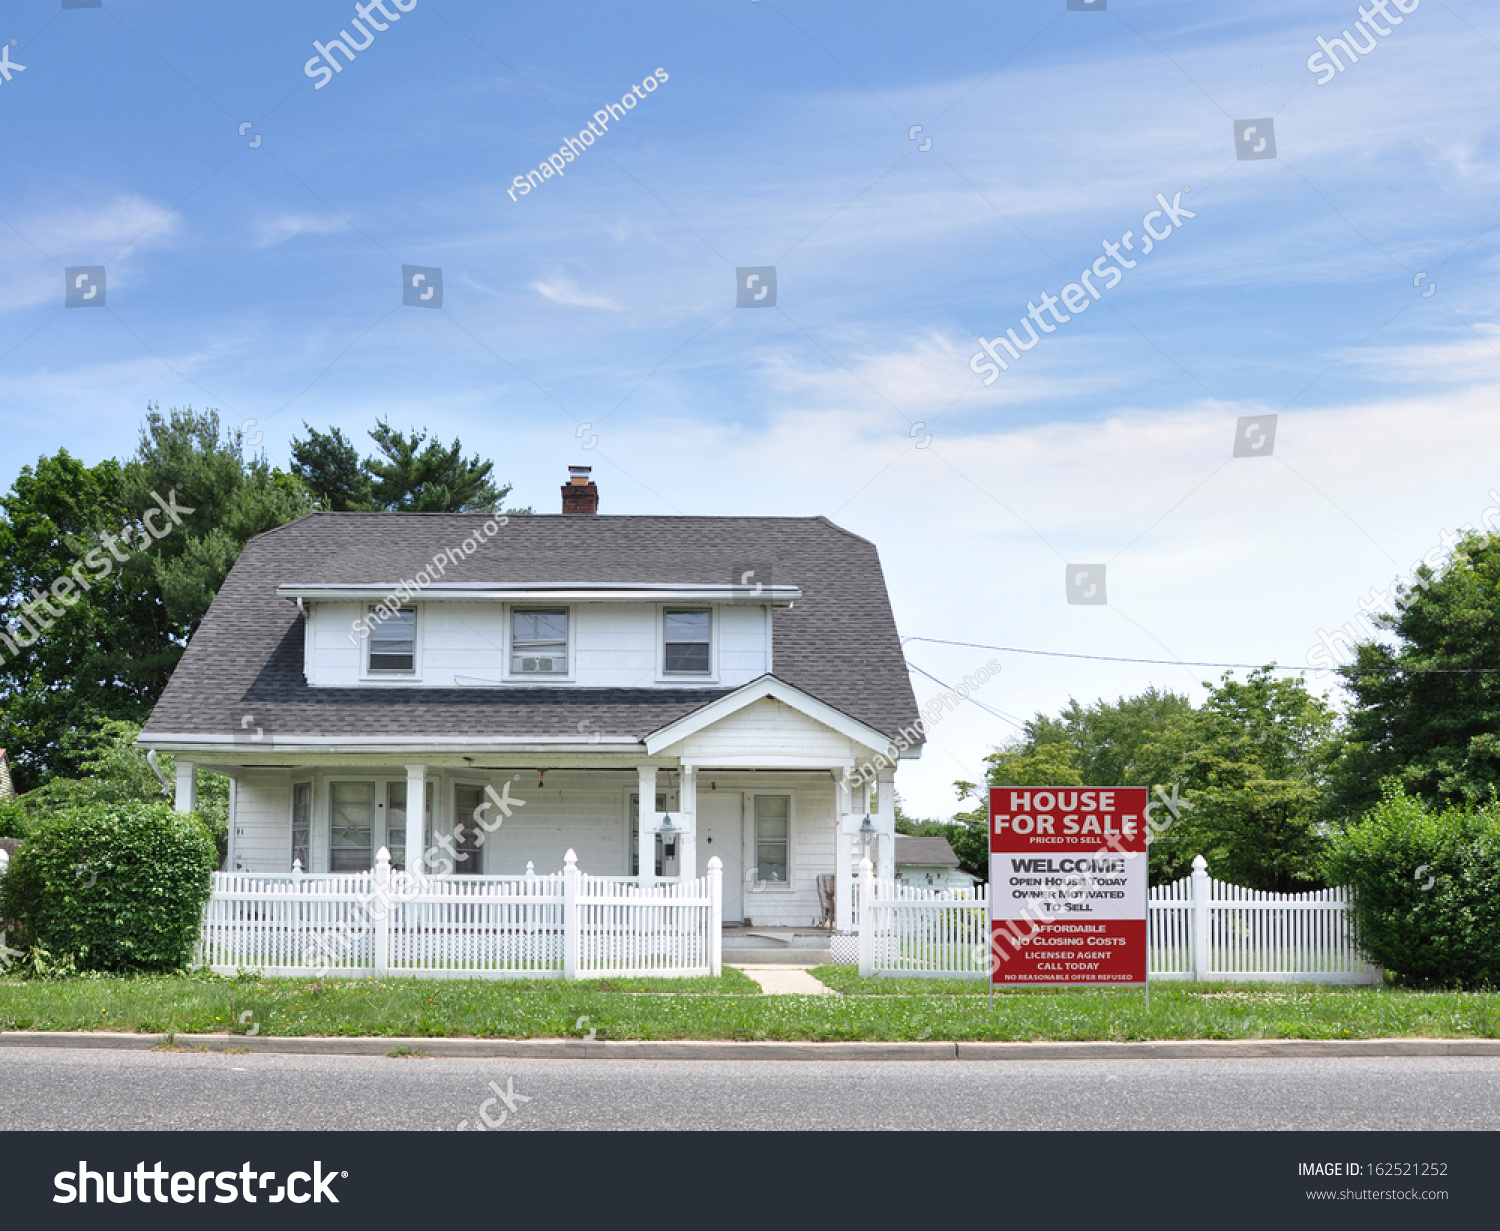 House For Sale White Picket Fence Suburban Home